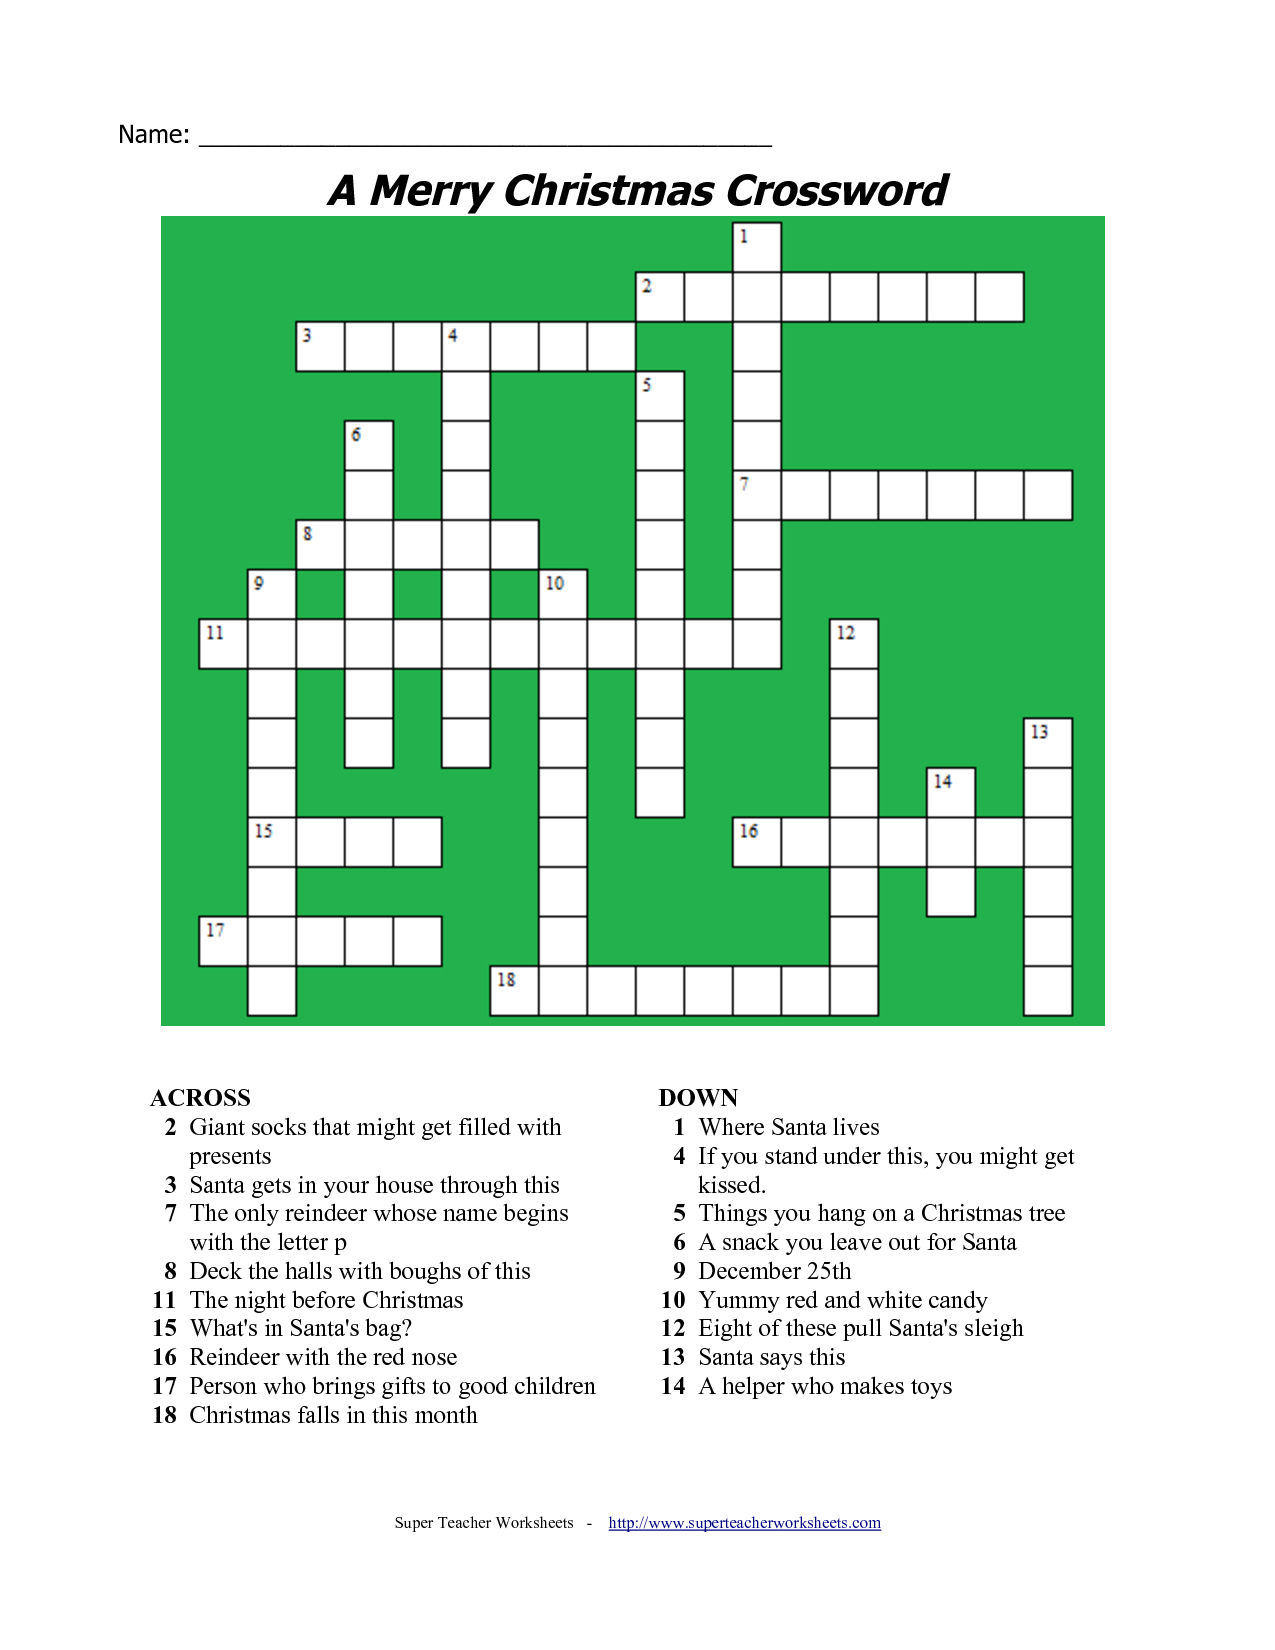 20 Fun Printable Christmas Crossword Puzzles | Kittybabylove - Printable English Crossword Puzzles With Answers Pdf